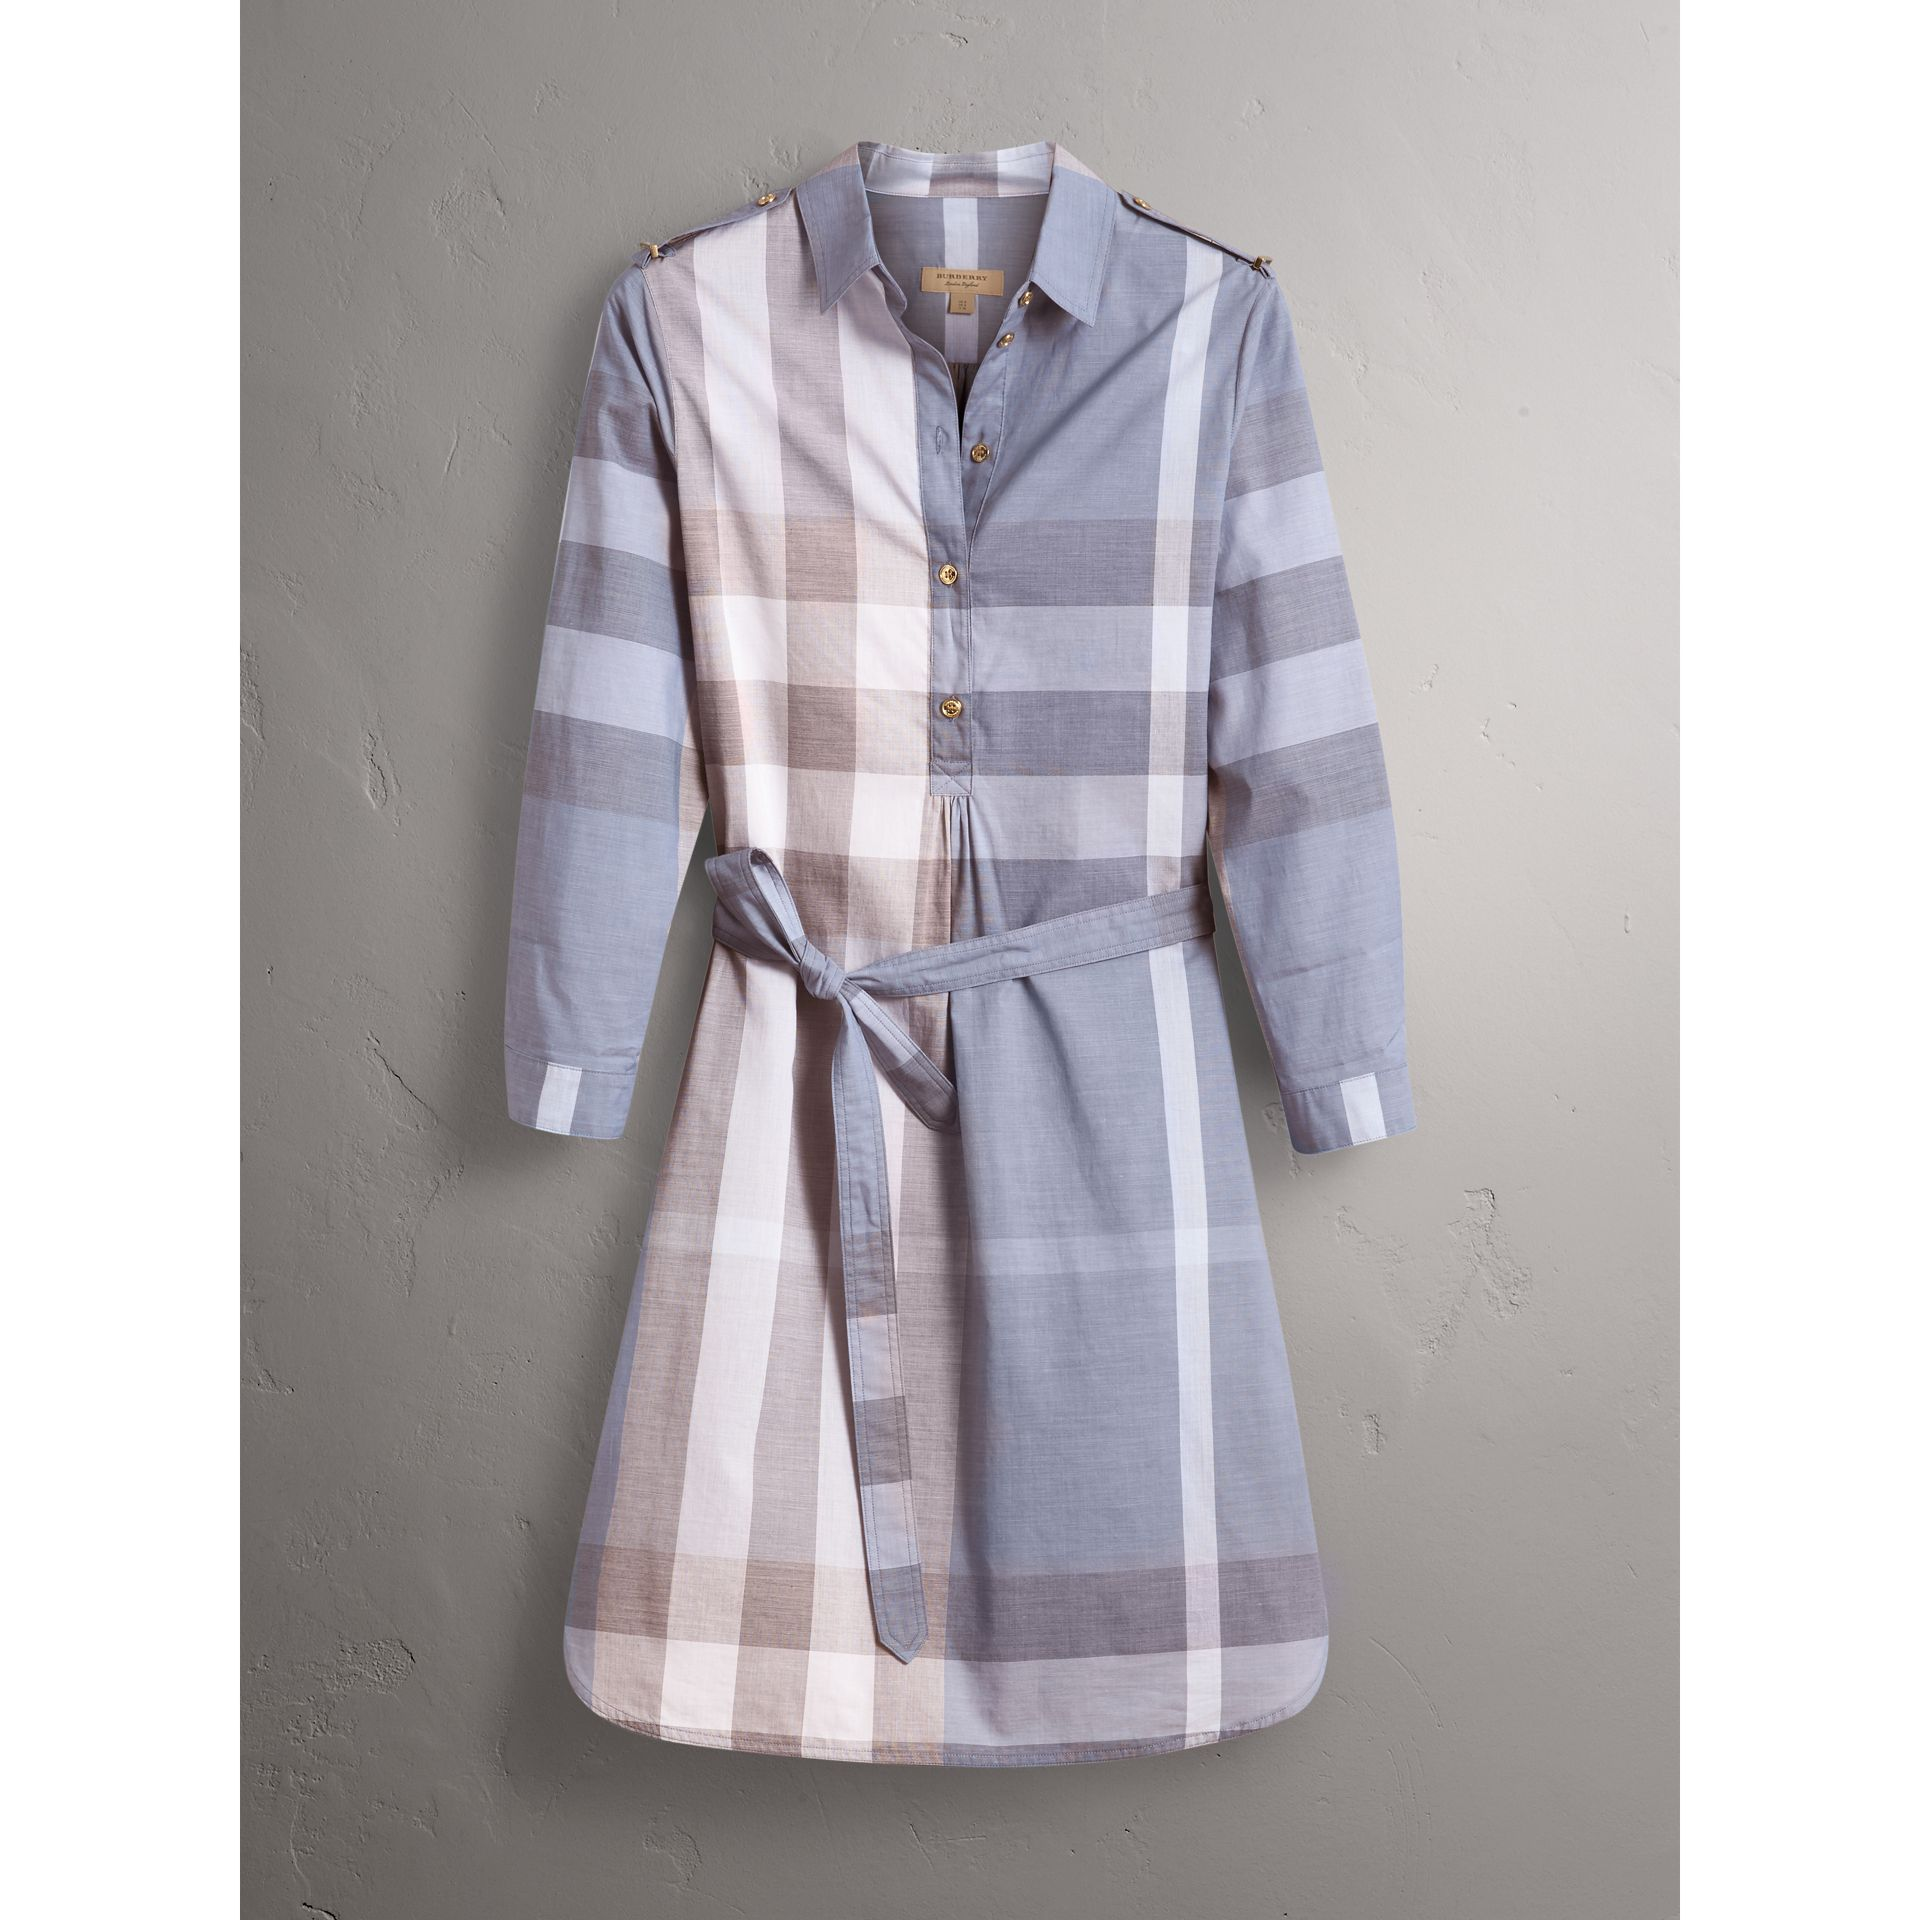 Tie-waist Check Cotton Shirt Dress in Canvas Blue - Women | Burberry United States - gallery image 4